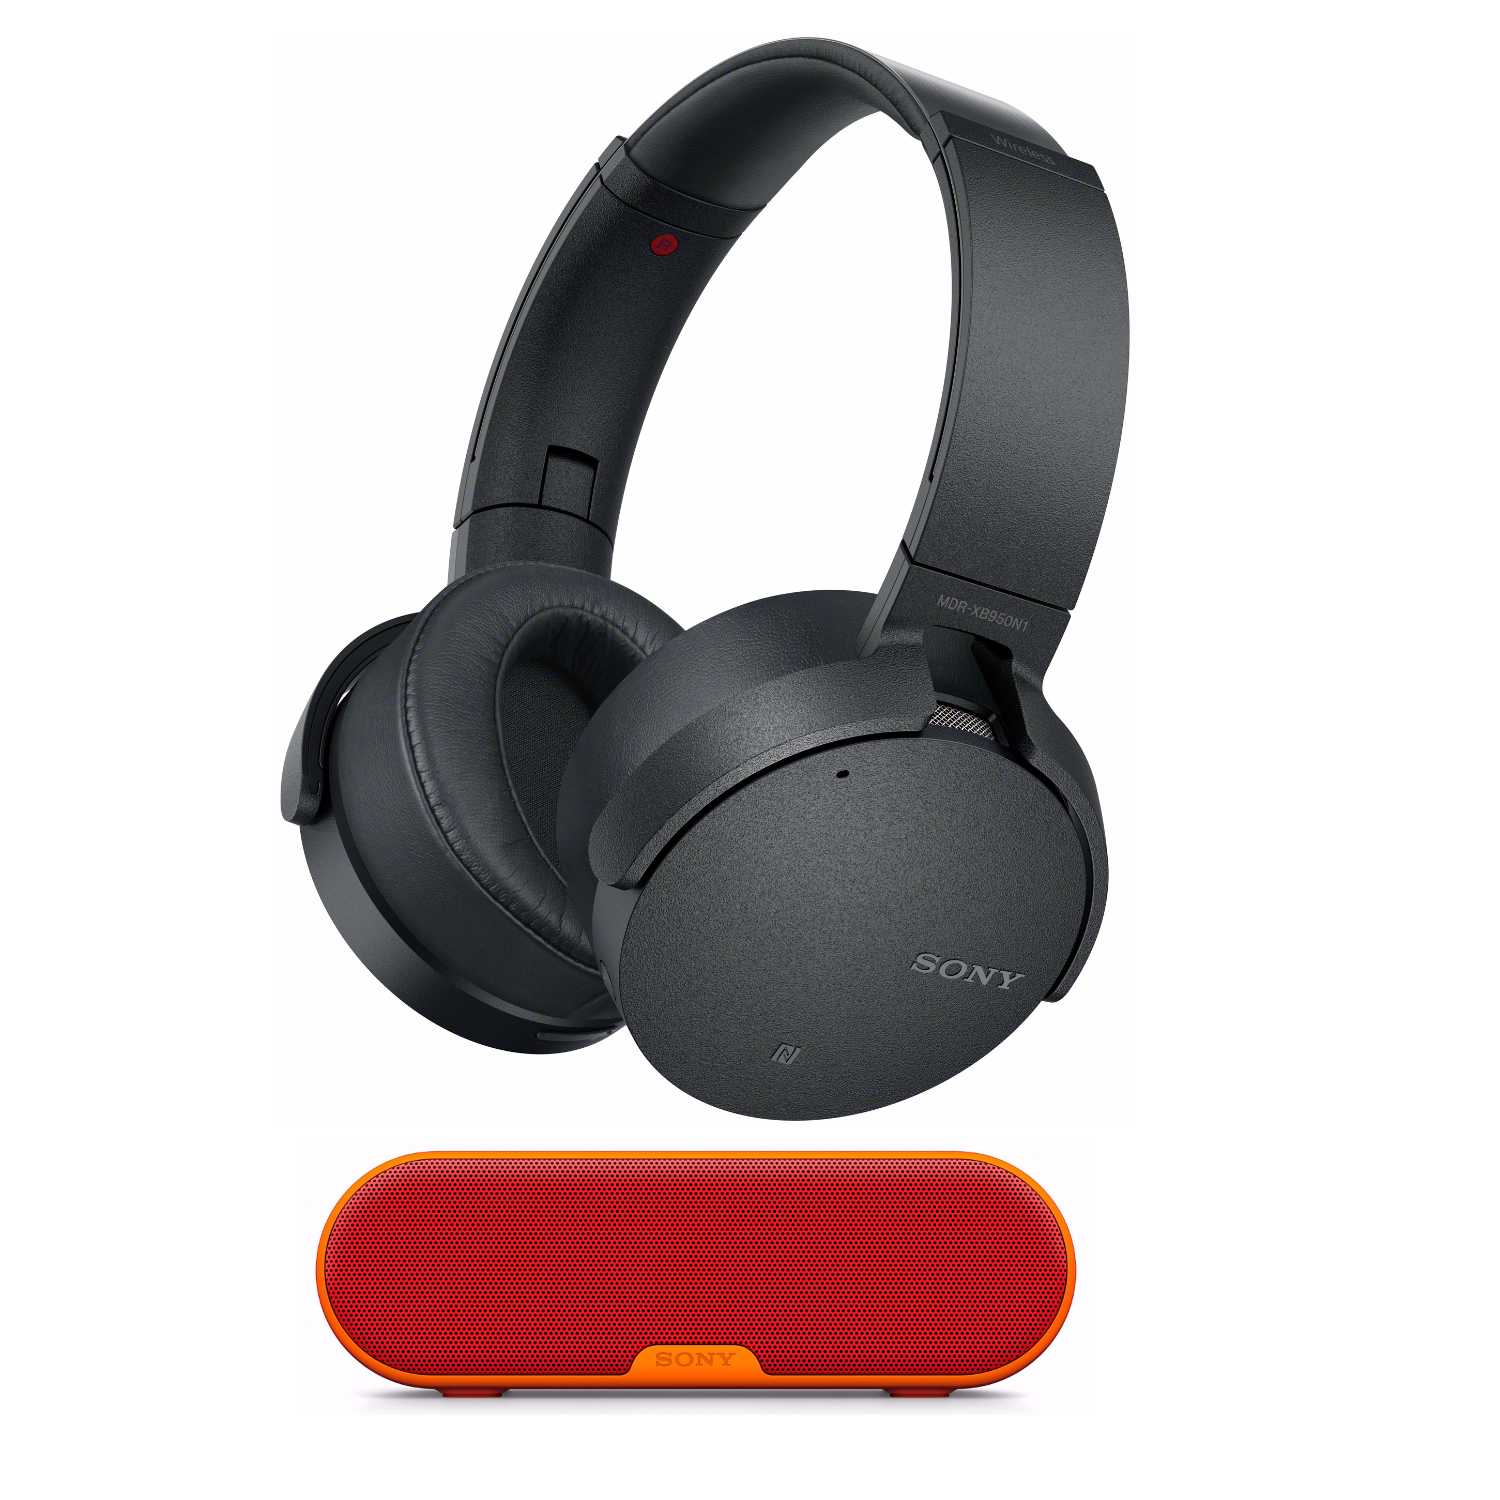 Sony XB950N1 Extra Bass Wireless Noise Canceling Headphones (Black) with Speaker